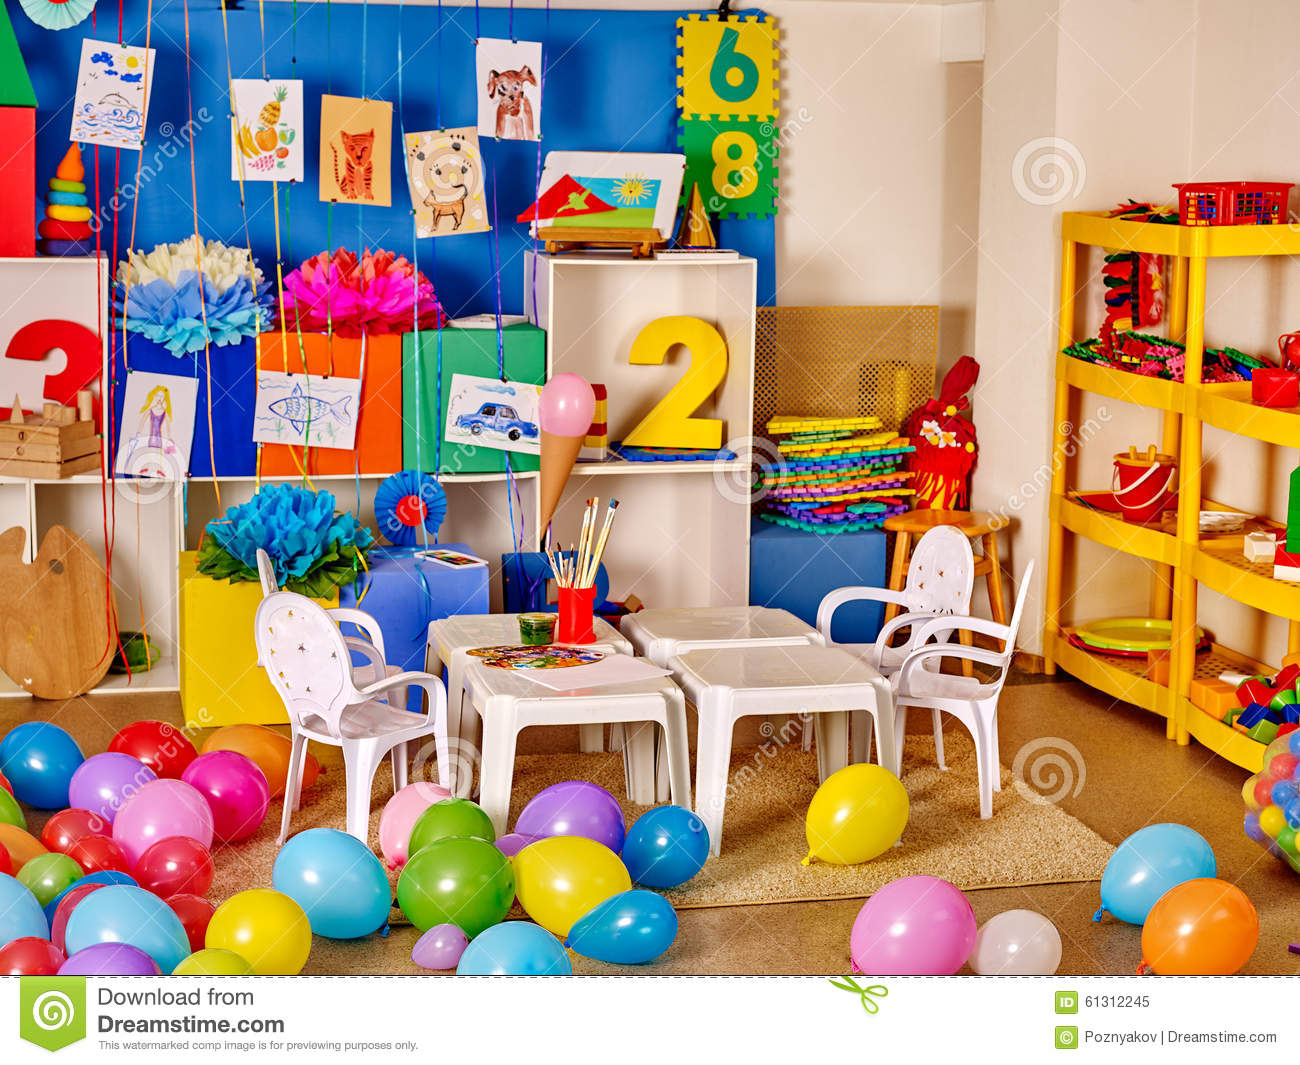 Worksheet Preschool Kindergarten interior of preschool kindergarten stock photo image 61312245 kindergarten